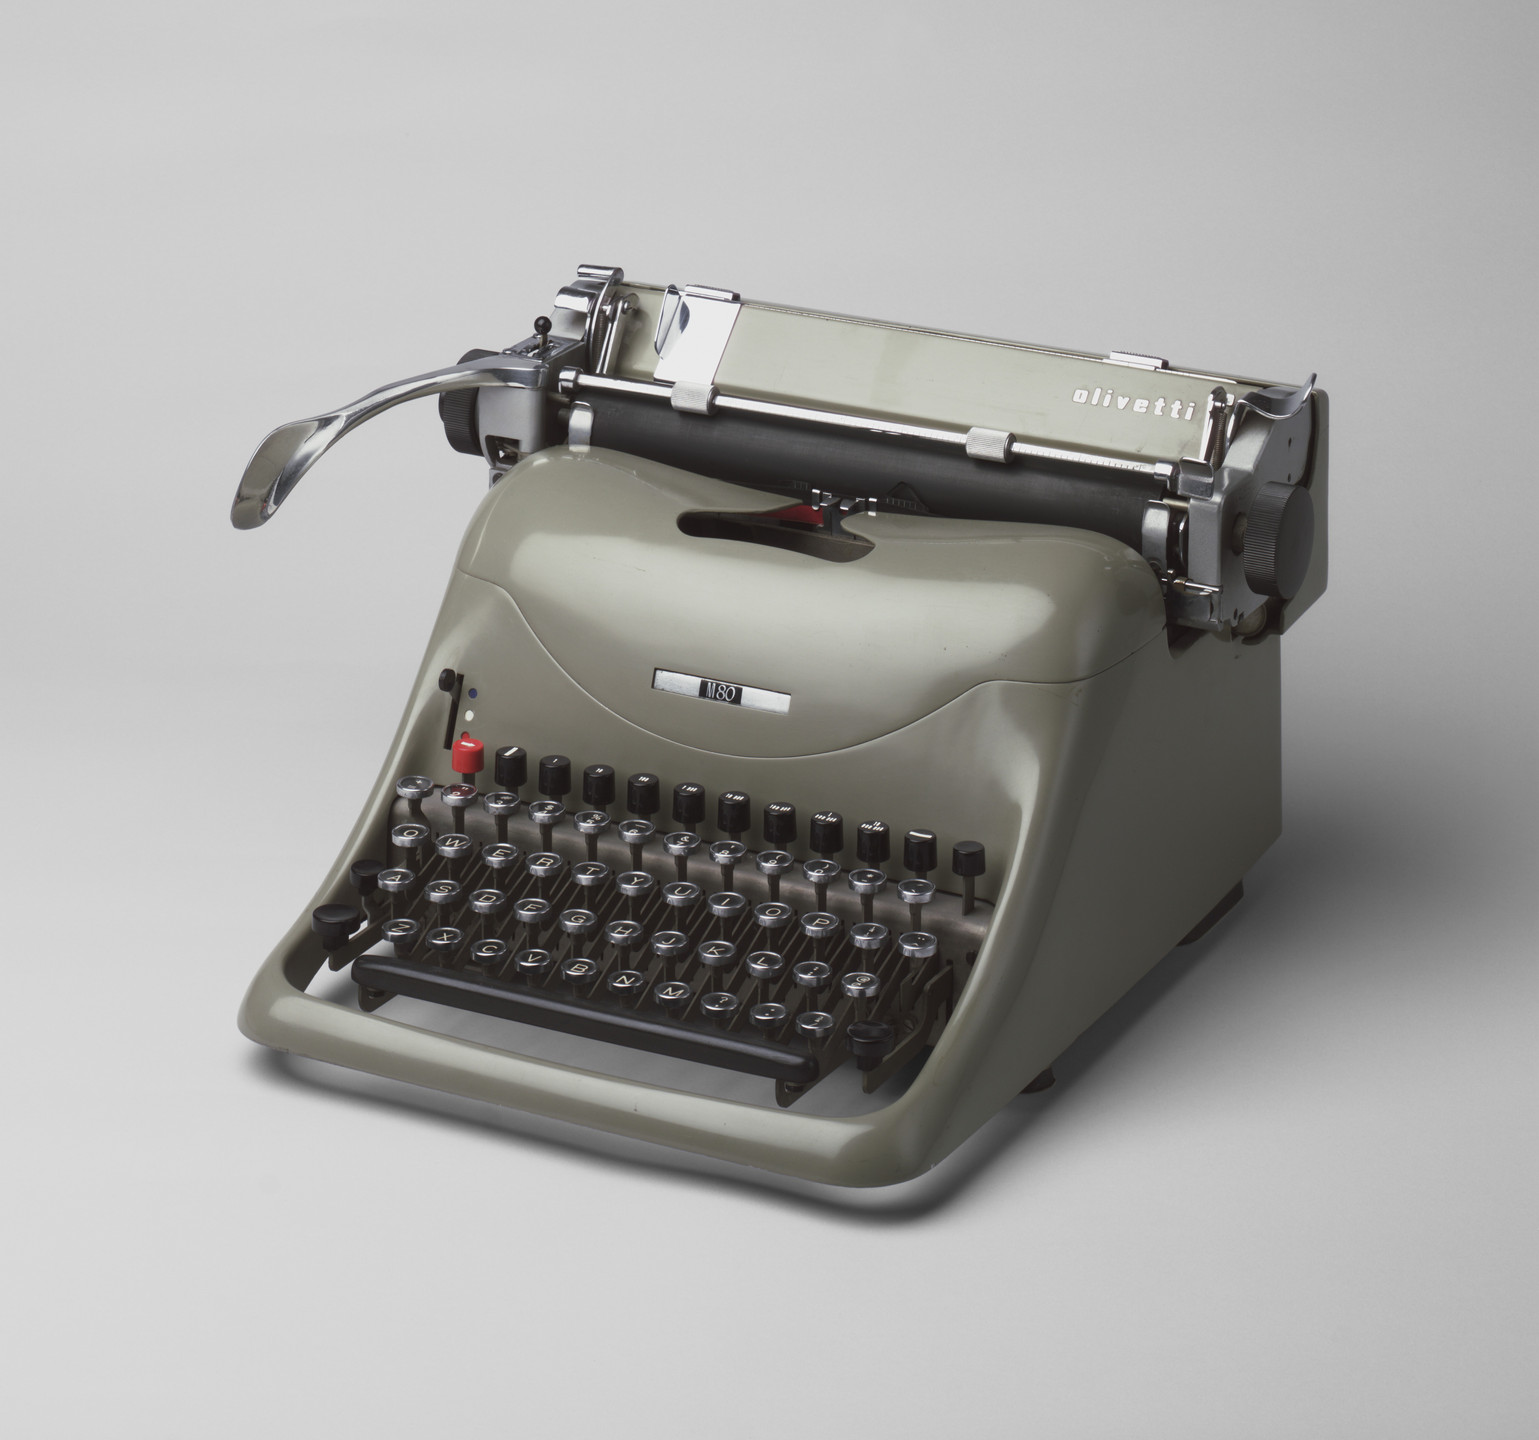 Marcello Nizzoli. Lexikon 80 Manual Typewriter. 1948